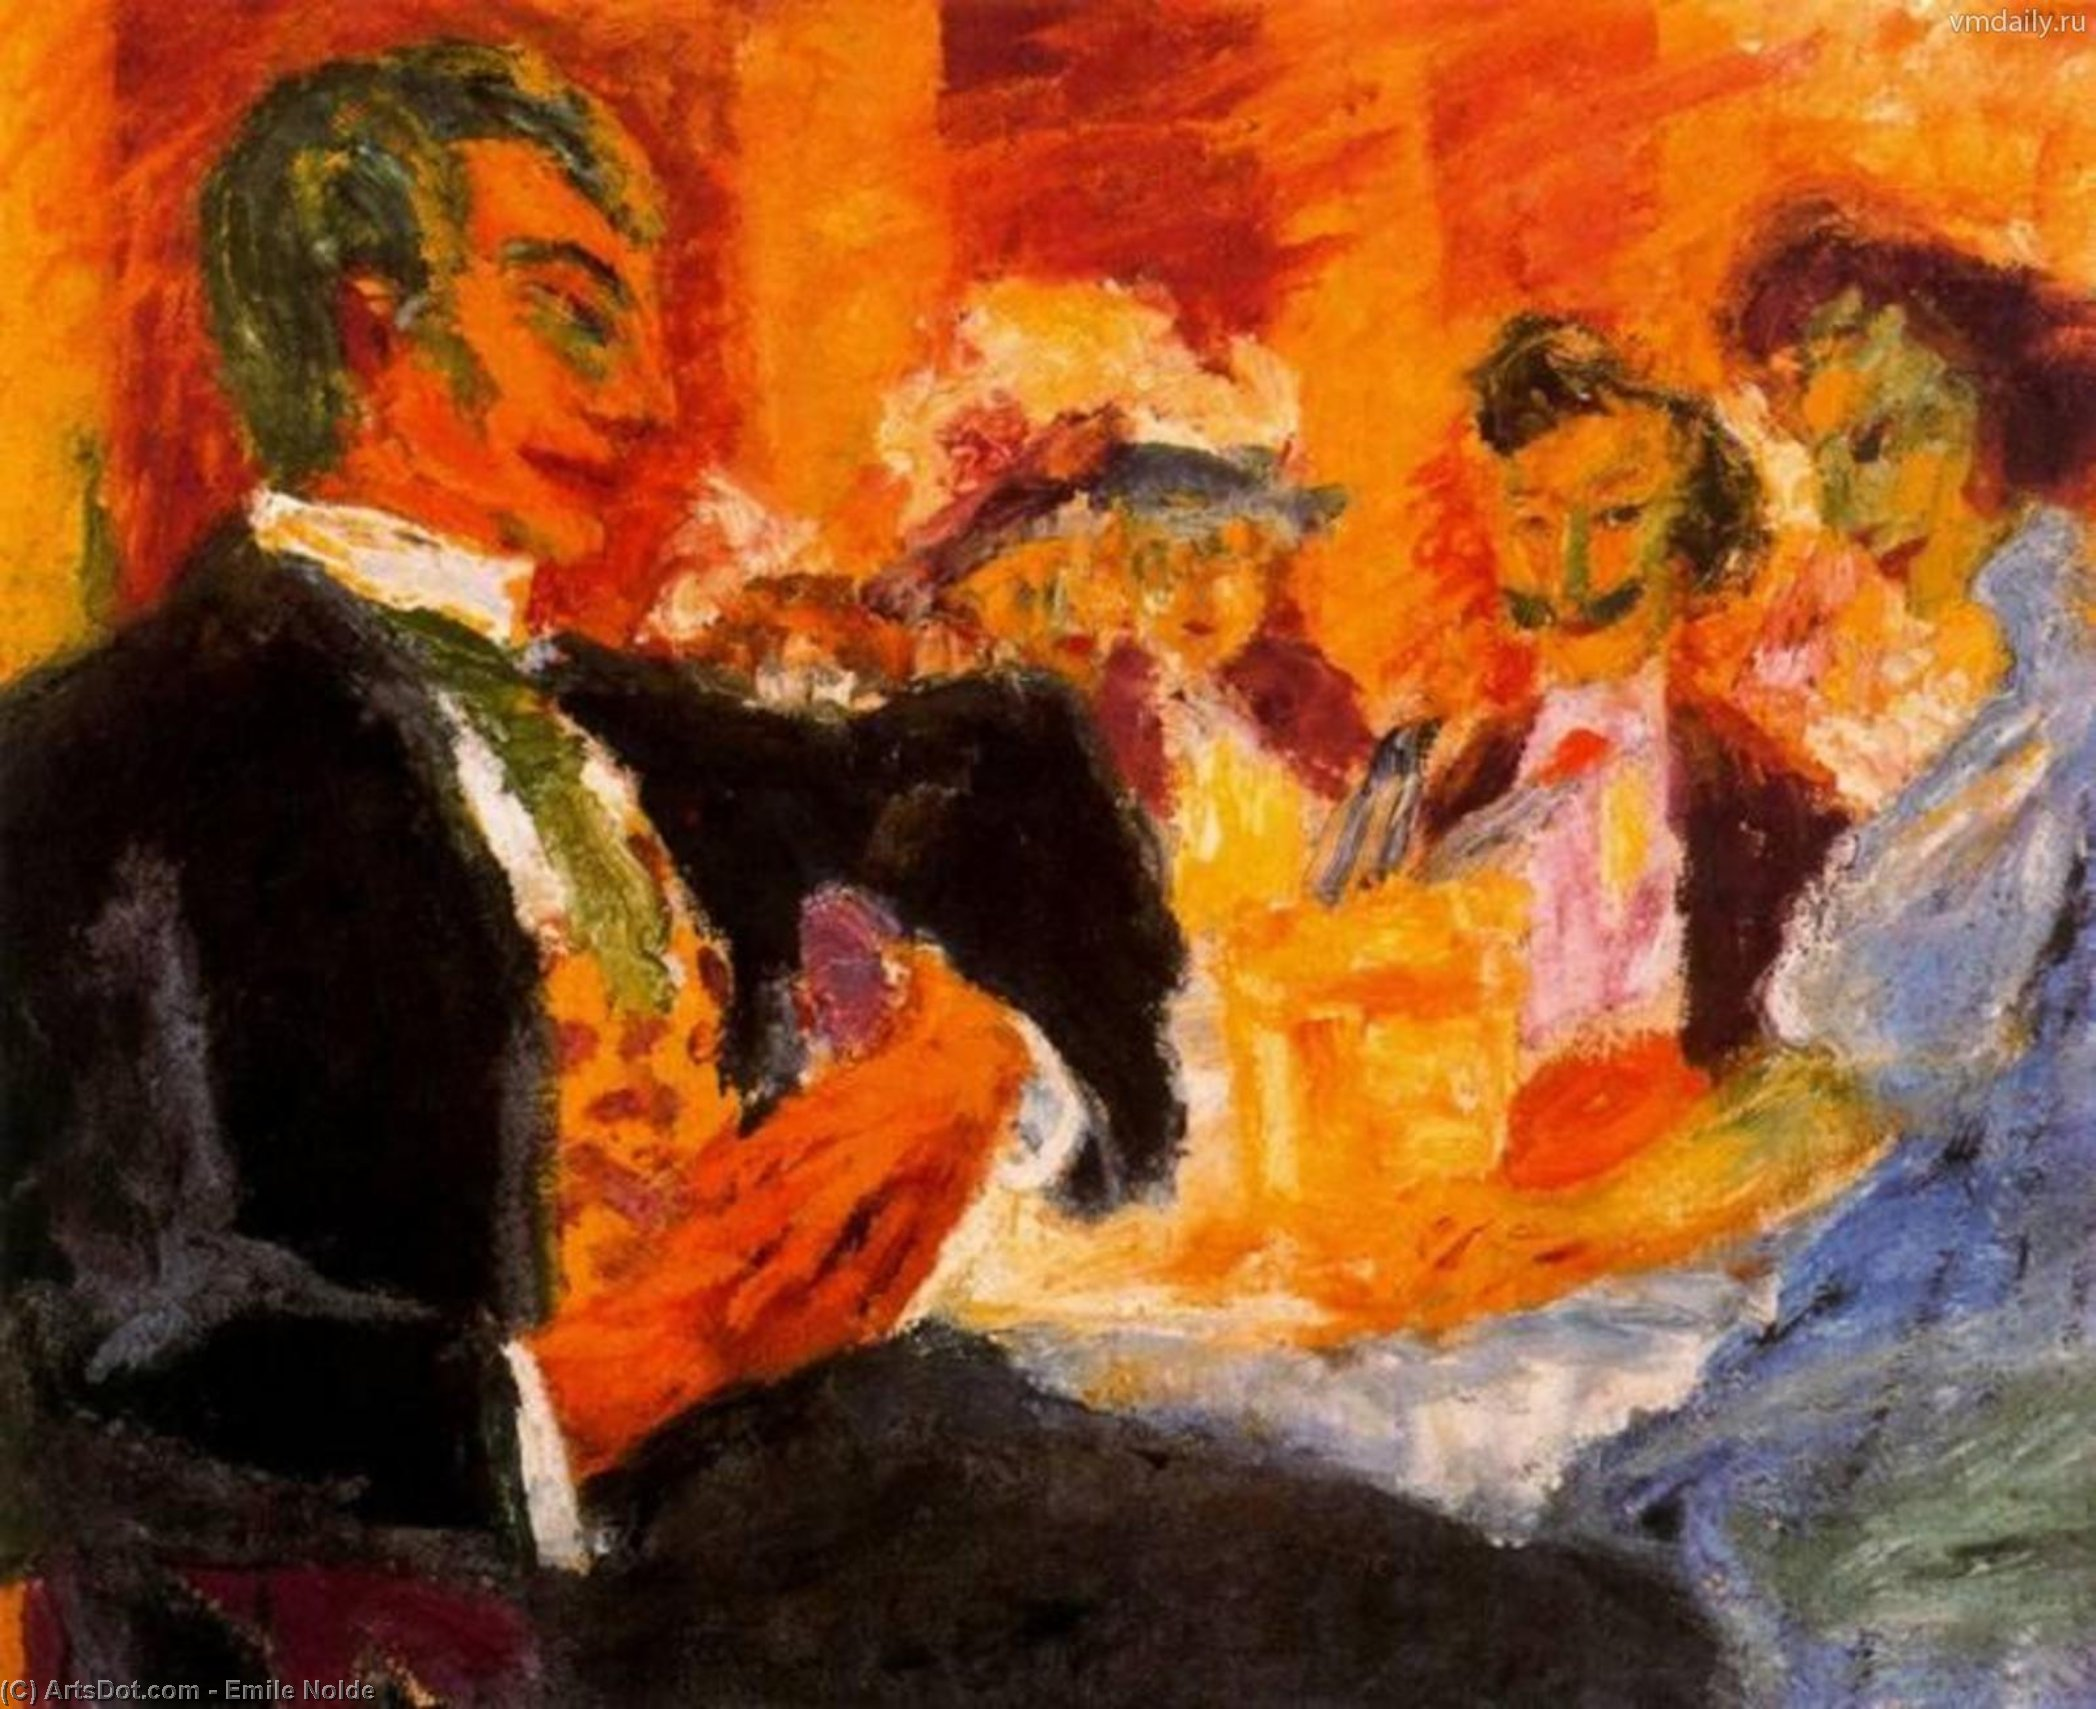 In the coffee by Emile Nolde (1867-1956, Germany)